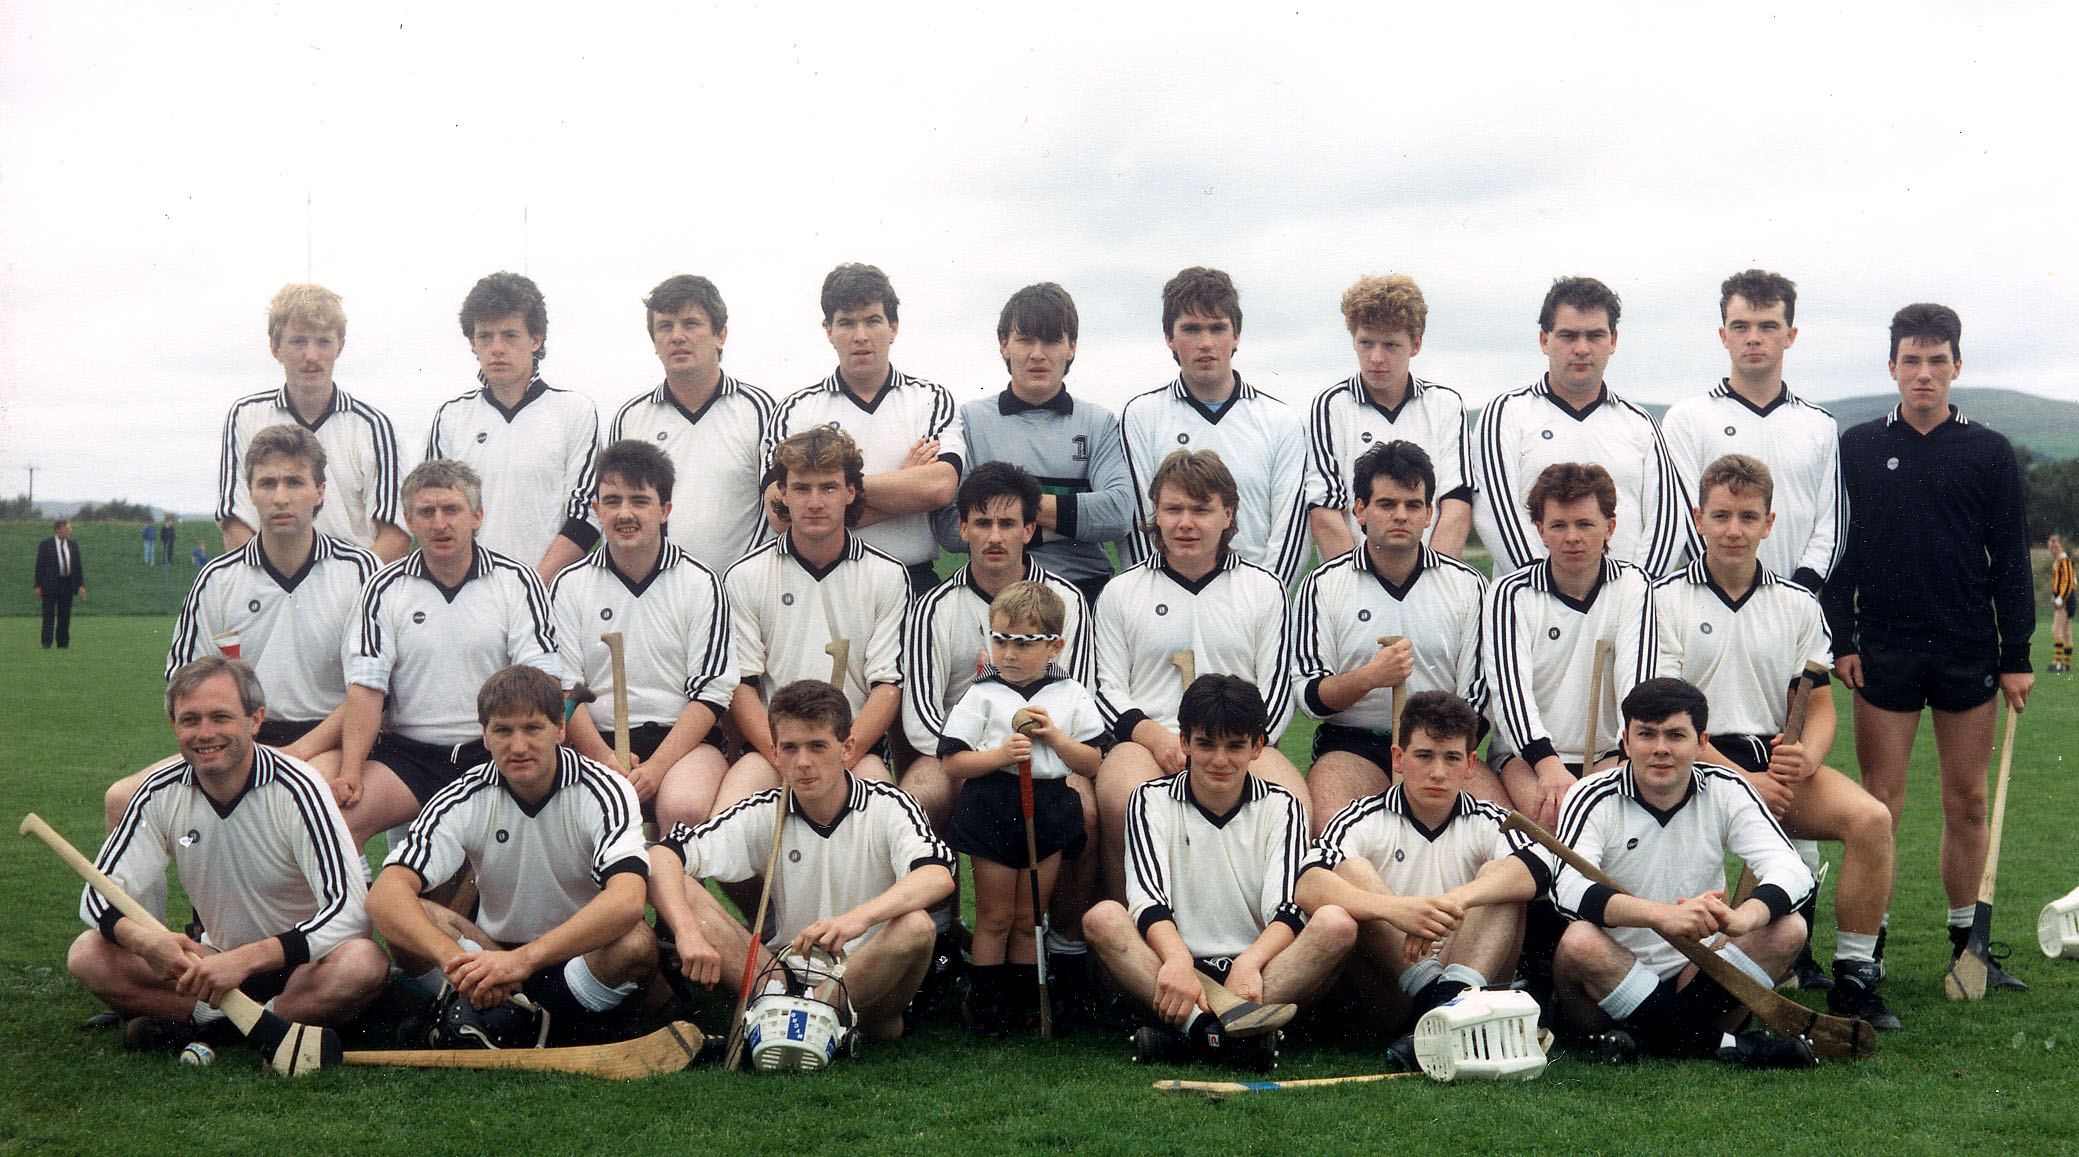 1988: Senior hurling championship finalists.